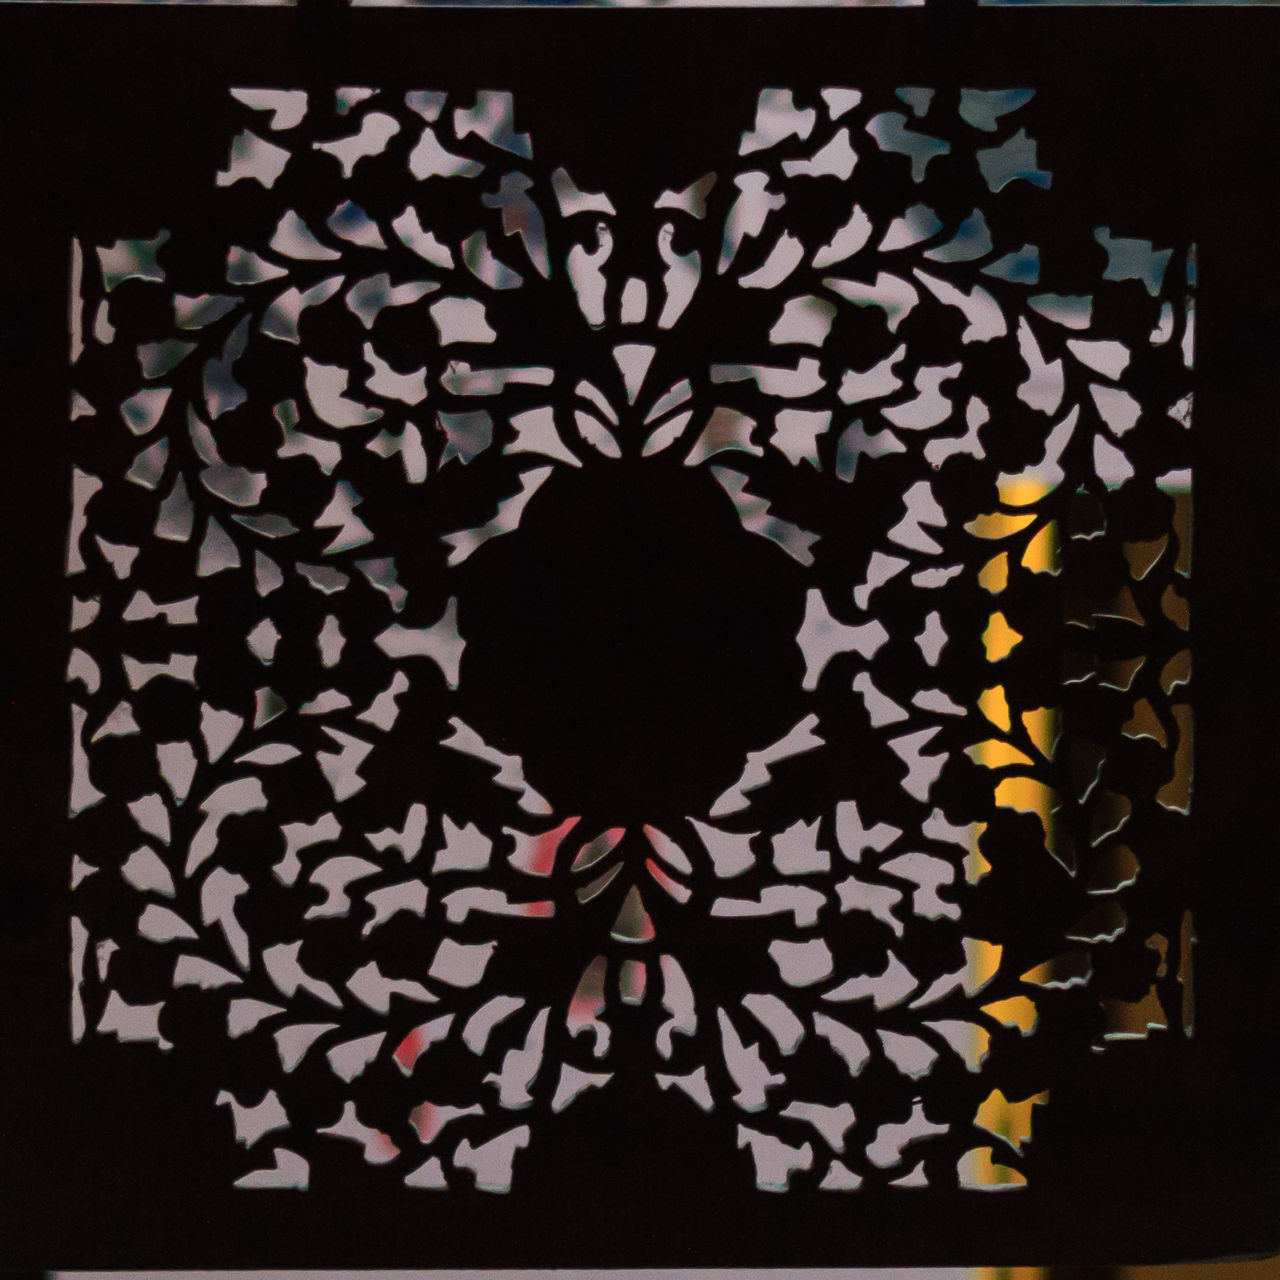 Art Decoration Design Geometric Shape Light And Dark Light And Shadow Pattern Wood Cut